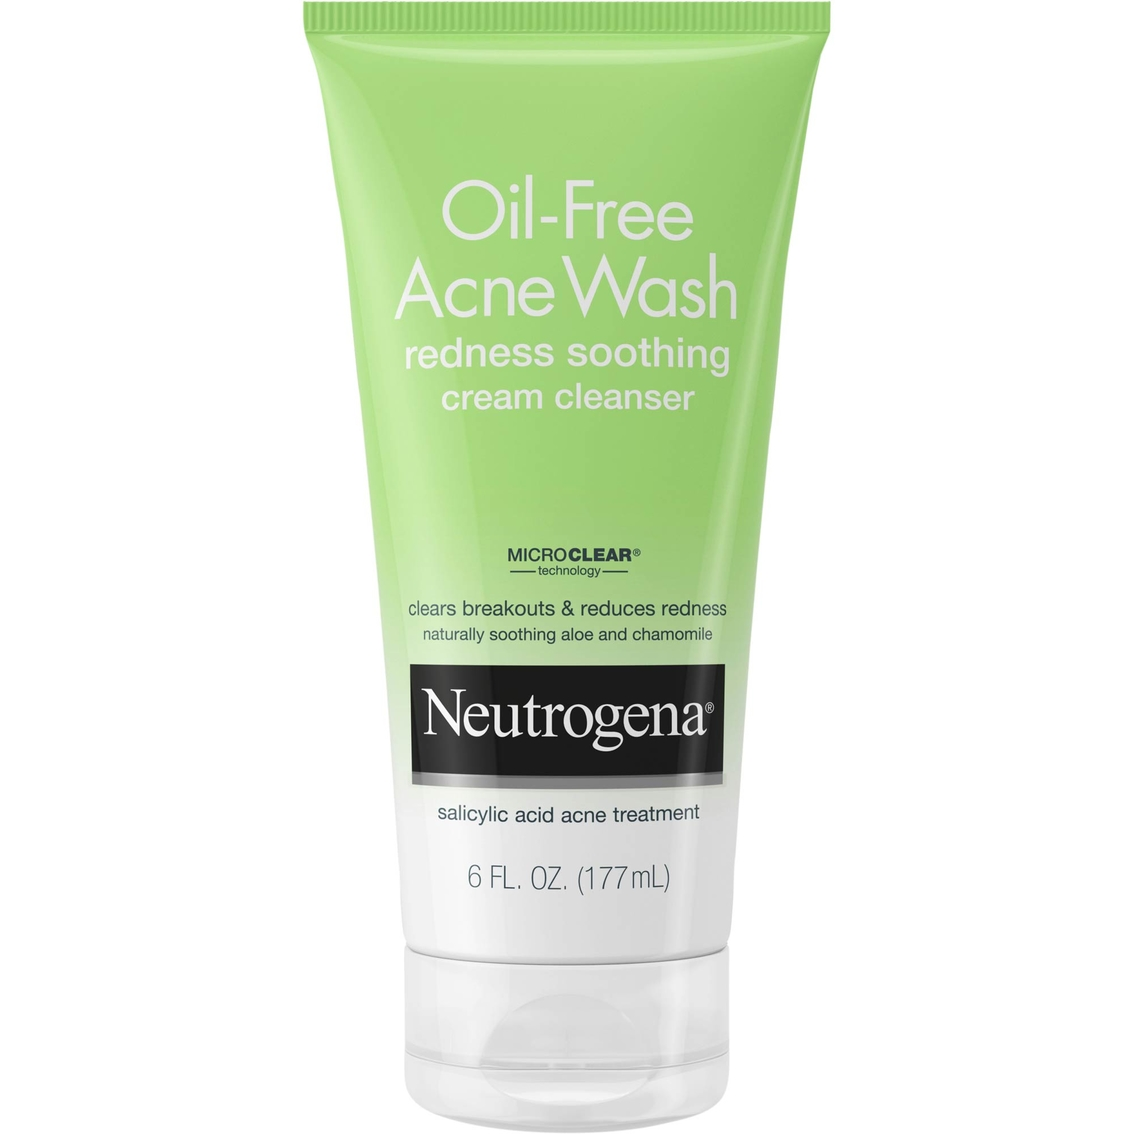 Neutrogena Oil Free Acne Wash Redness Soothing Cream Facial